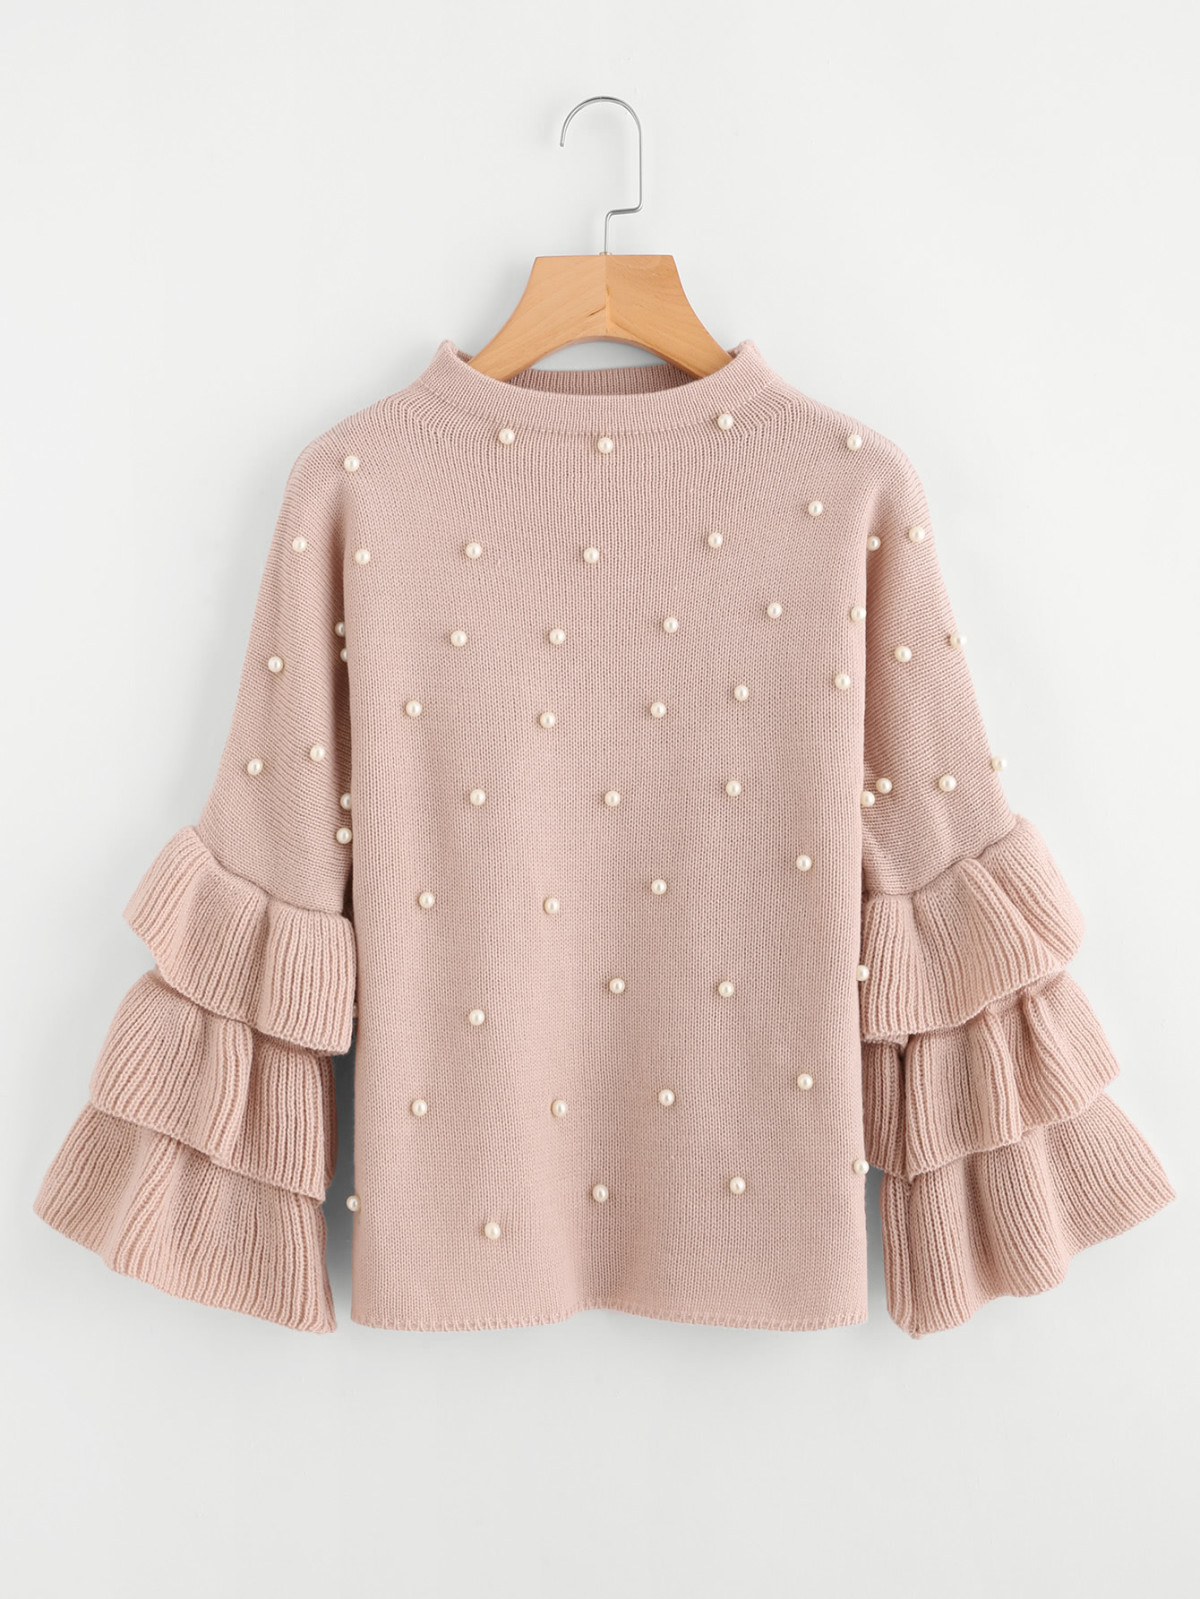 peal beaded sweater, cute sweaters, cute sweaters winter 2018, best sweaters to buy now, spring sweaters, pearl sweater, bell sleeve sweater, cute pink sweater, tie front sweater, romwe blogger, romwe fashion, romwe style